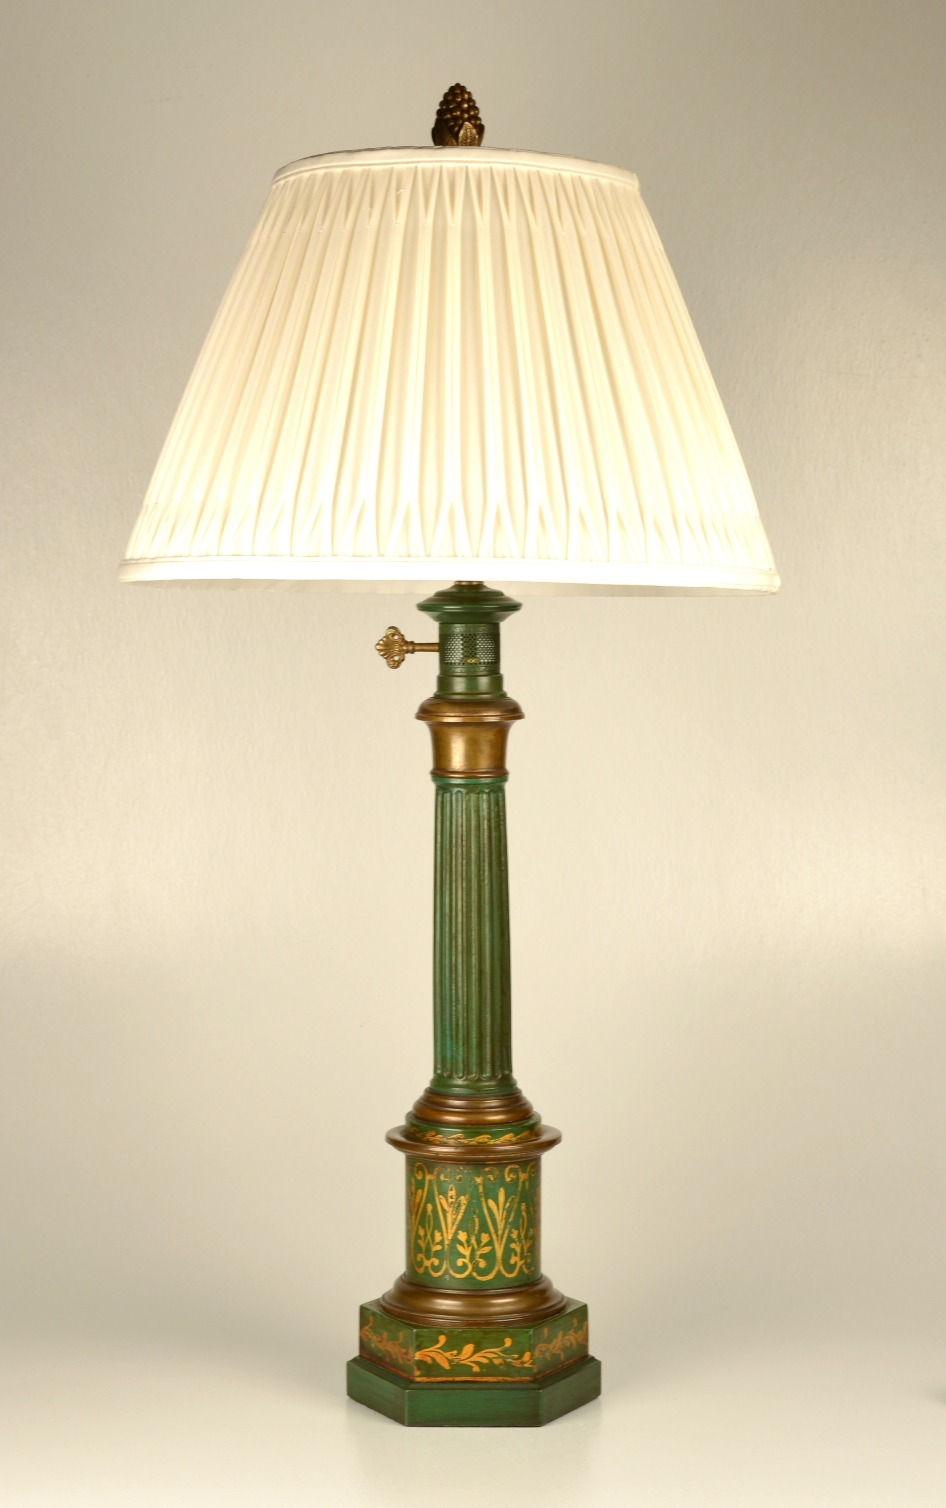 View 5: Pair of Green Tole Column Lamps